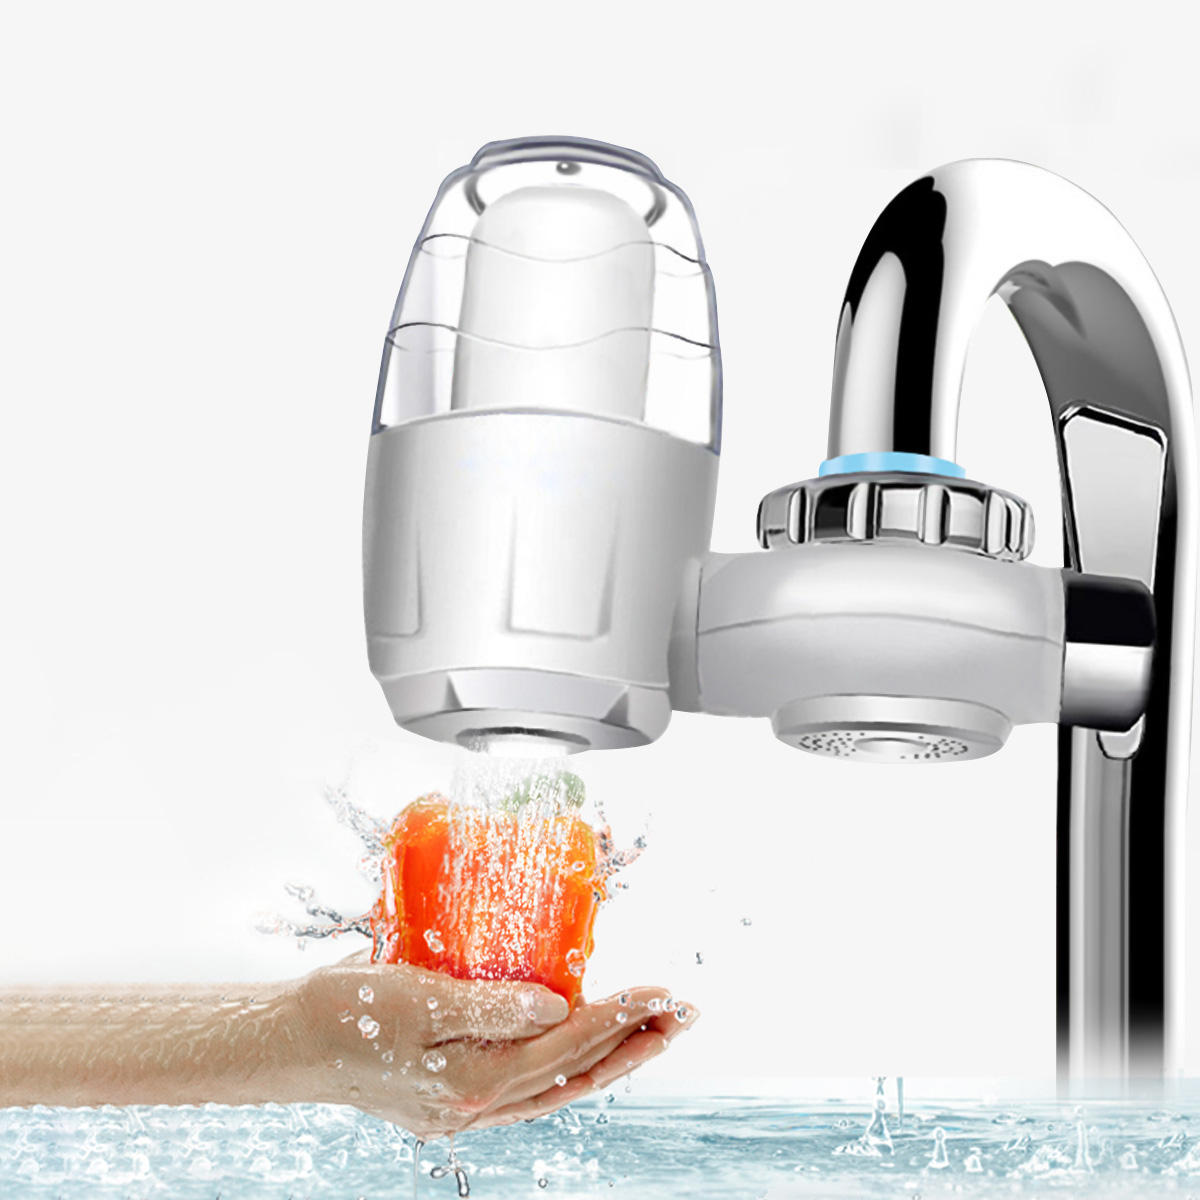 7 Washable Filters Faucet Water Purifier Mount Tap Filtration Home Kitchen Sink